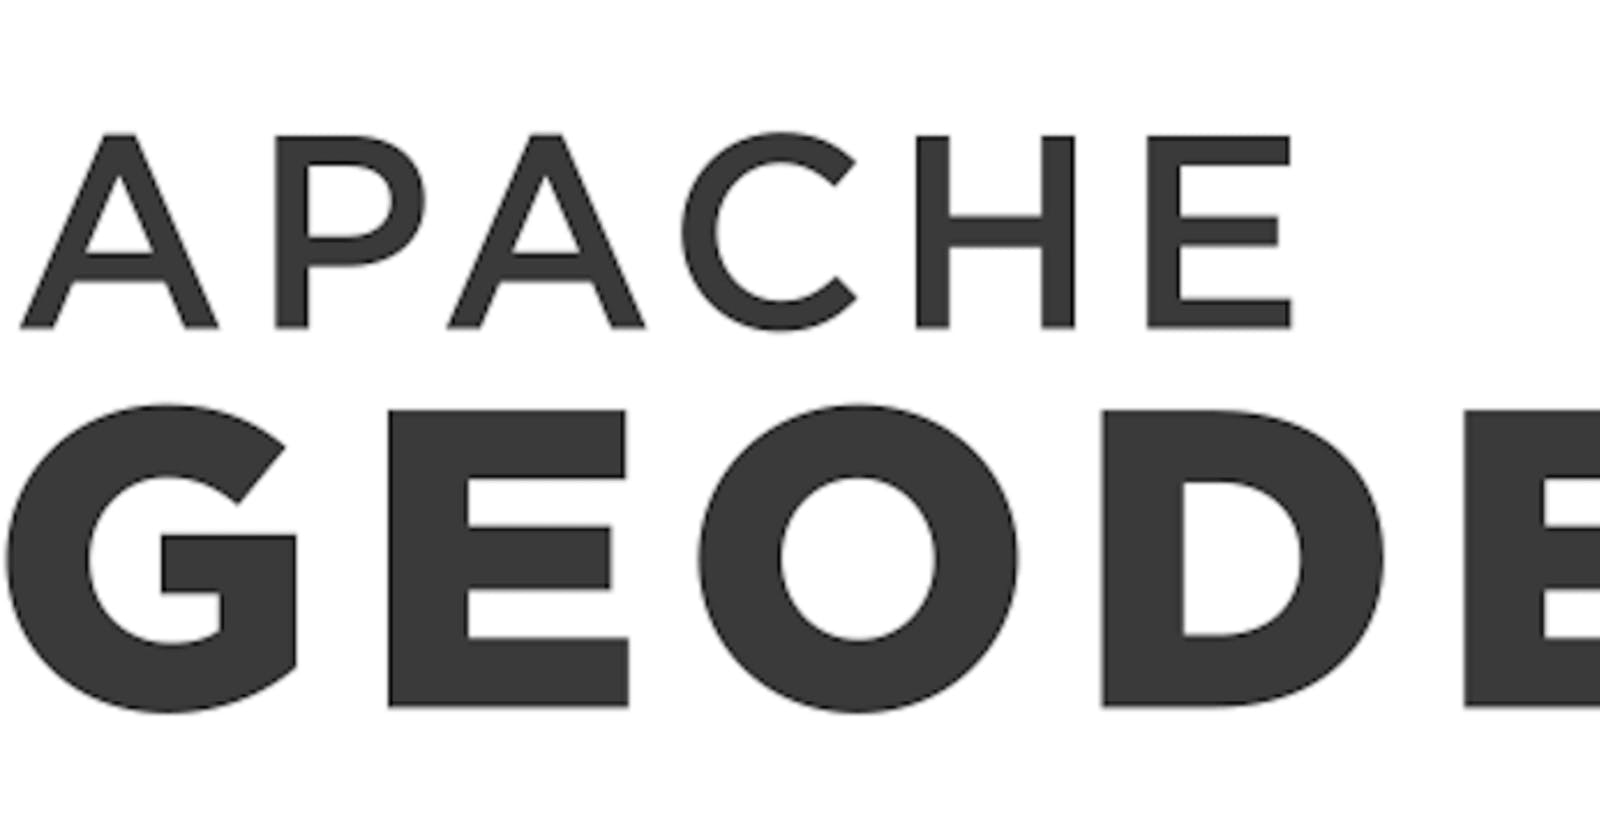 Connecting a Java Client with Apache Geode Docker Container